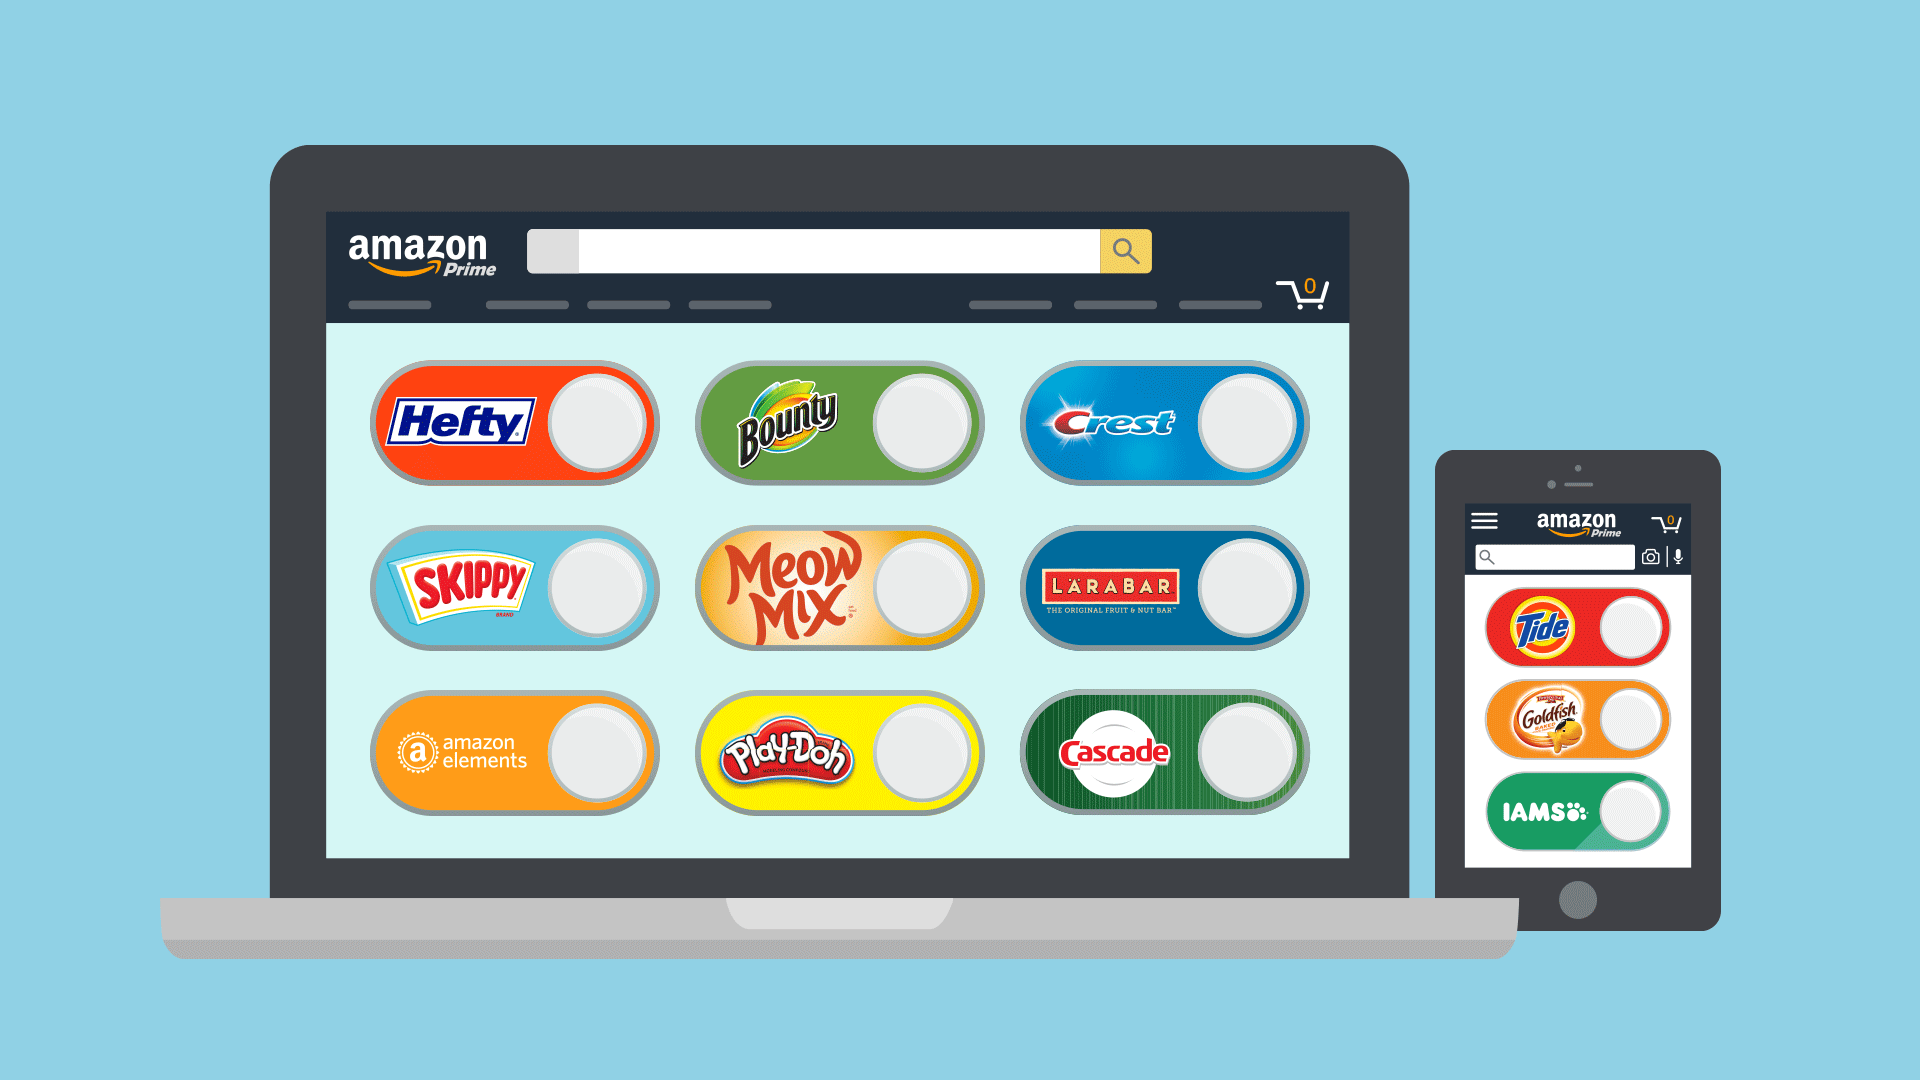 Digital Dash Buttons demonstrate Amazon's expertise in retail